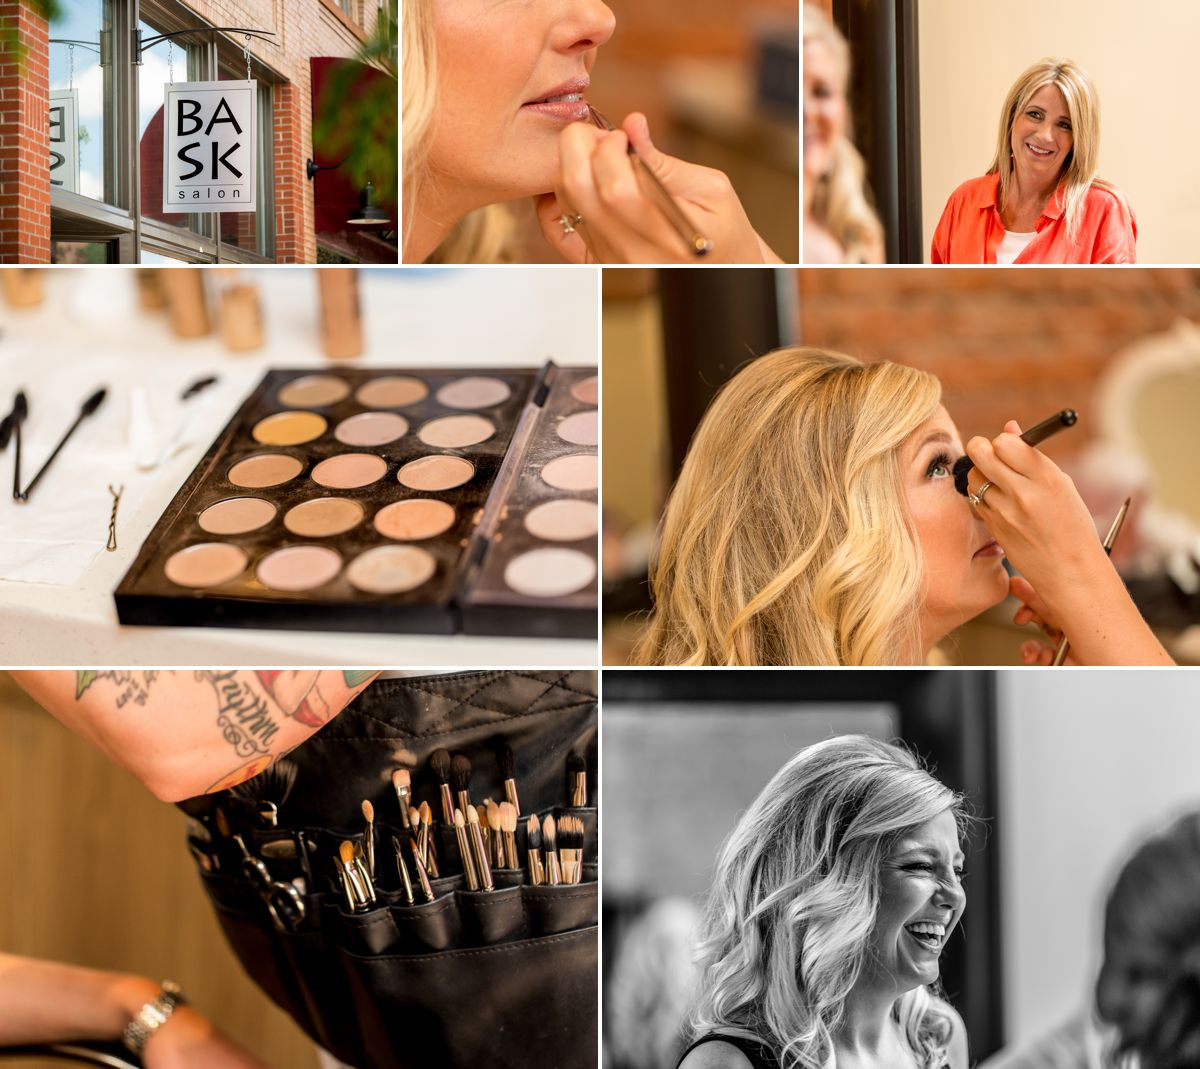 Bask Salon has incredible lighting, amazing staff and the perfect location for your girls to gethair and makeup done on your wedding day.